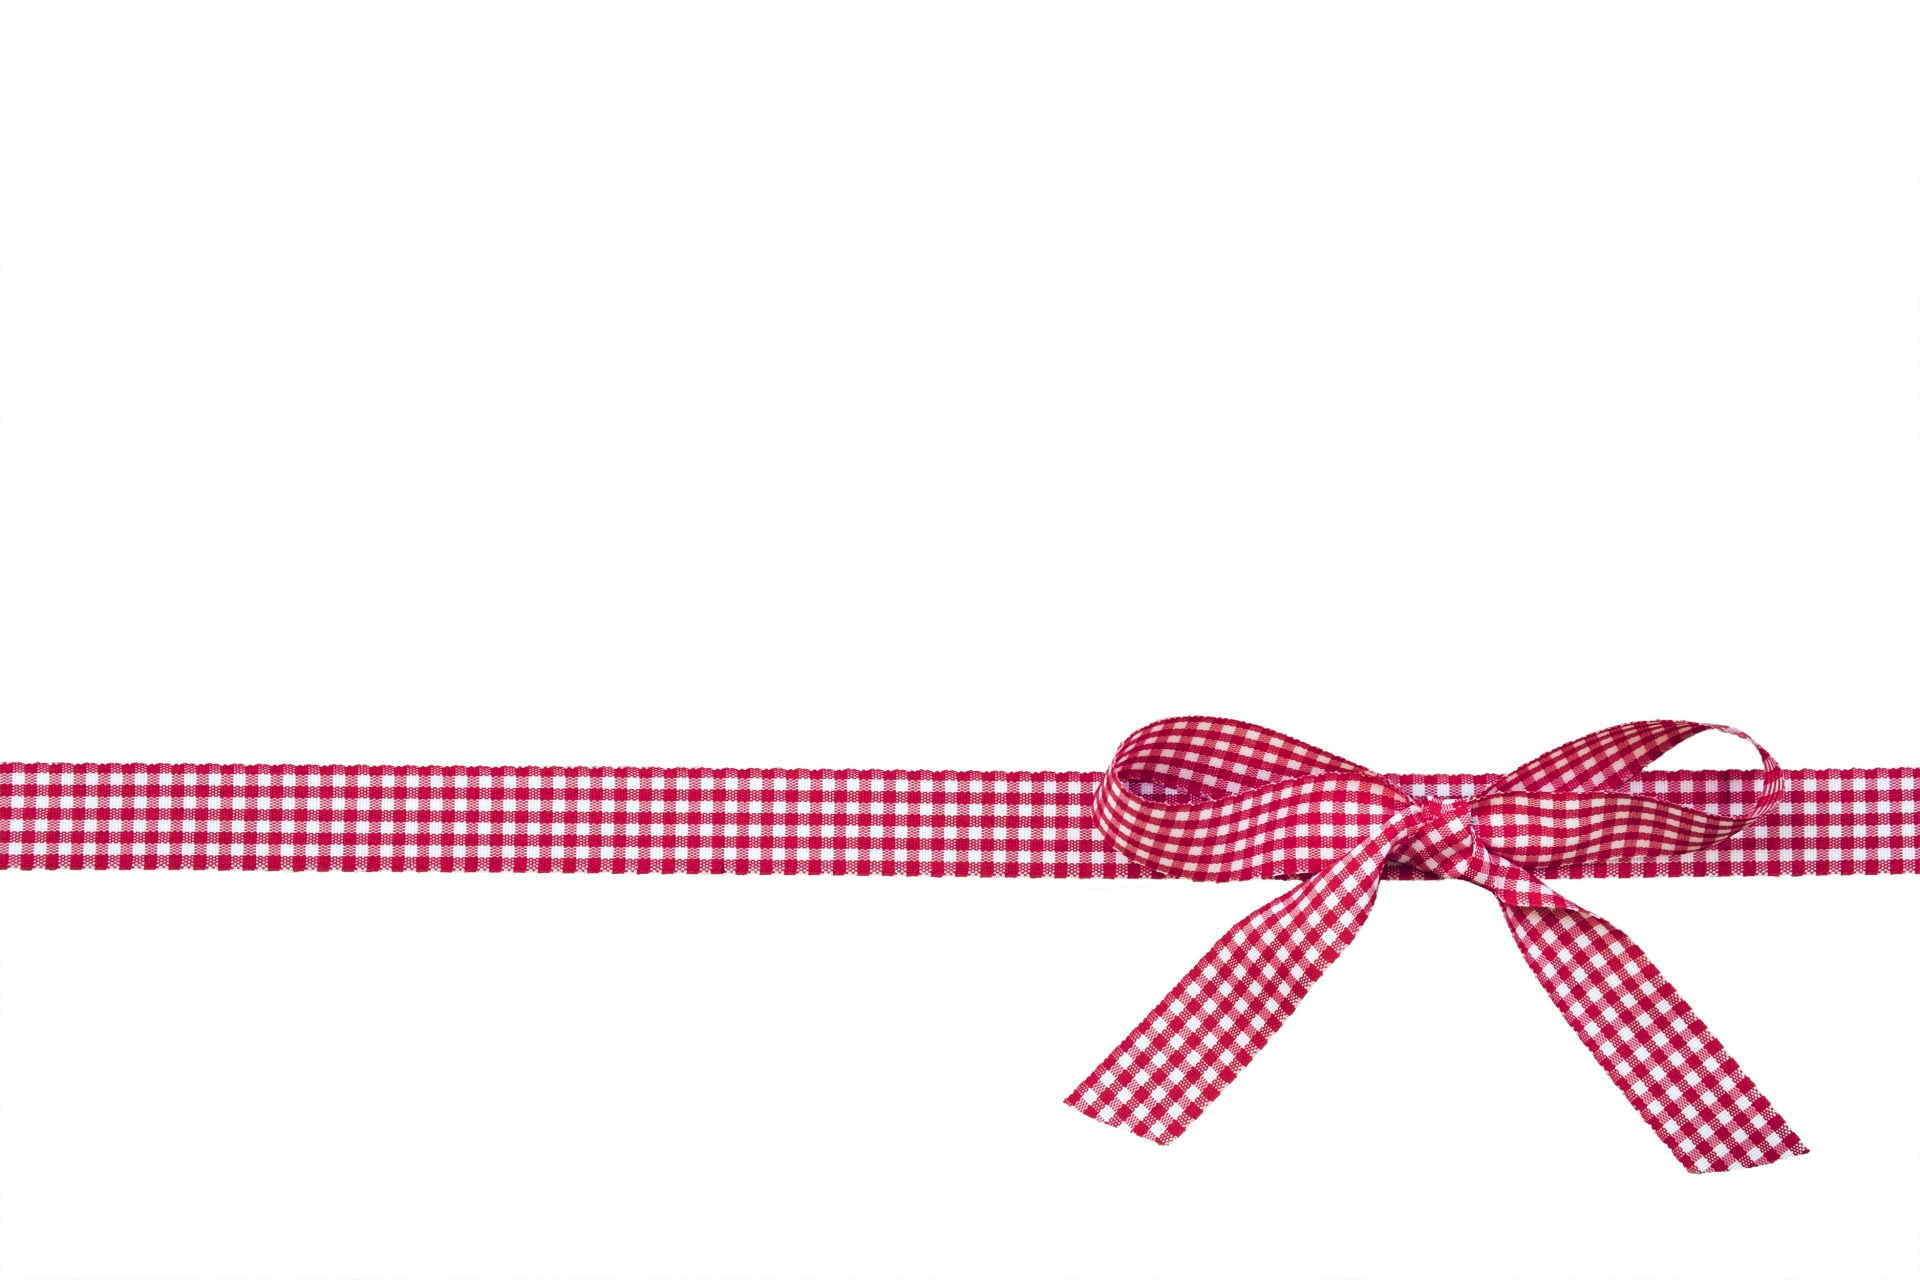 Ribbon & Bow Red Checks Free Stock Photo - Public Domain ... clipart black and white download